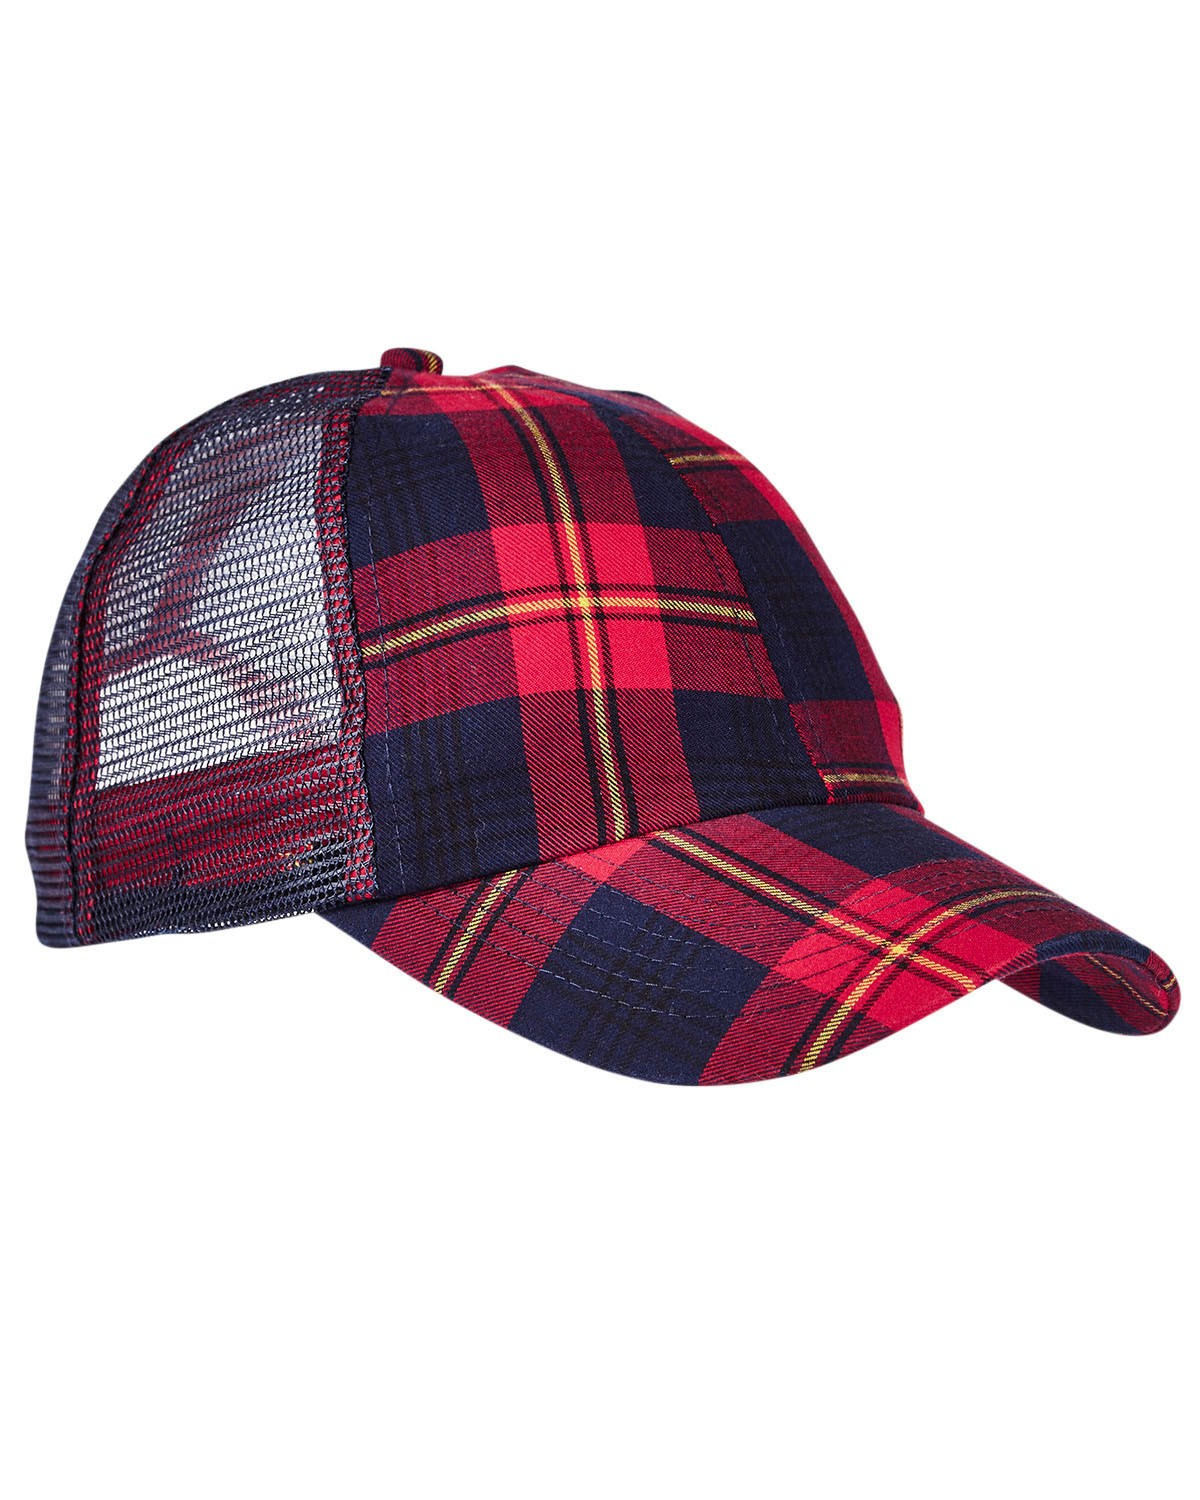 VB101 Adams RED/ NAVY PLAID